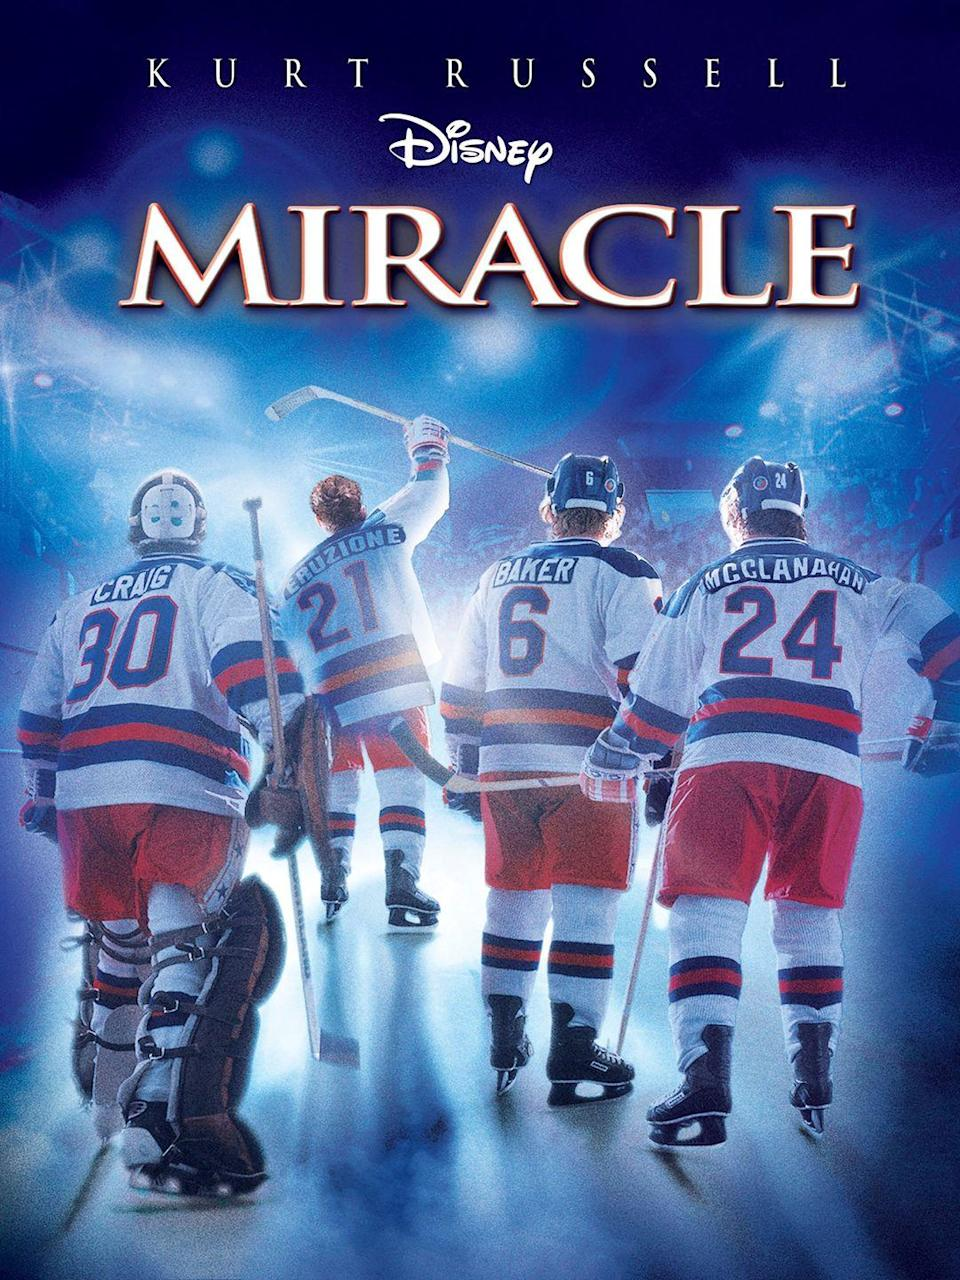 """<p>This retelling of the 1980 U.S. men's Olympic hockey team and their journey to victory brings tears to our eyes every time.</p><p><a class=""""link rapid-noclick-resp"""" href=""""https://www.amazon.com/Miracle-Kurt-Russell/dp/B003V5EDQ8/?tag=syn-yahoo-20&ascsubtag=%5Bartid%7C10050.g.25336174%5Bsrc%7Cyahoo-us"""" rel=""""nofollow noopener"""" target=""""_blank"""" data-ylk=""""slk:WATCH NOW"""">WATCH NOW</a></p>"""